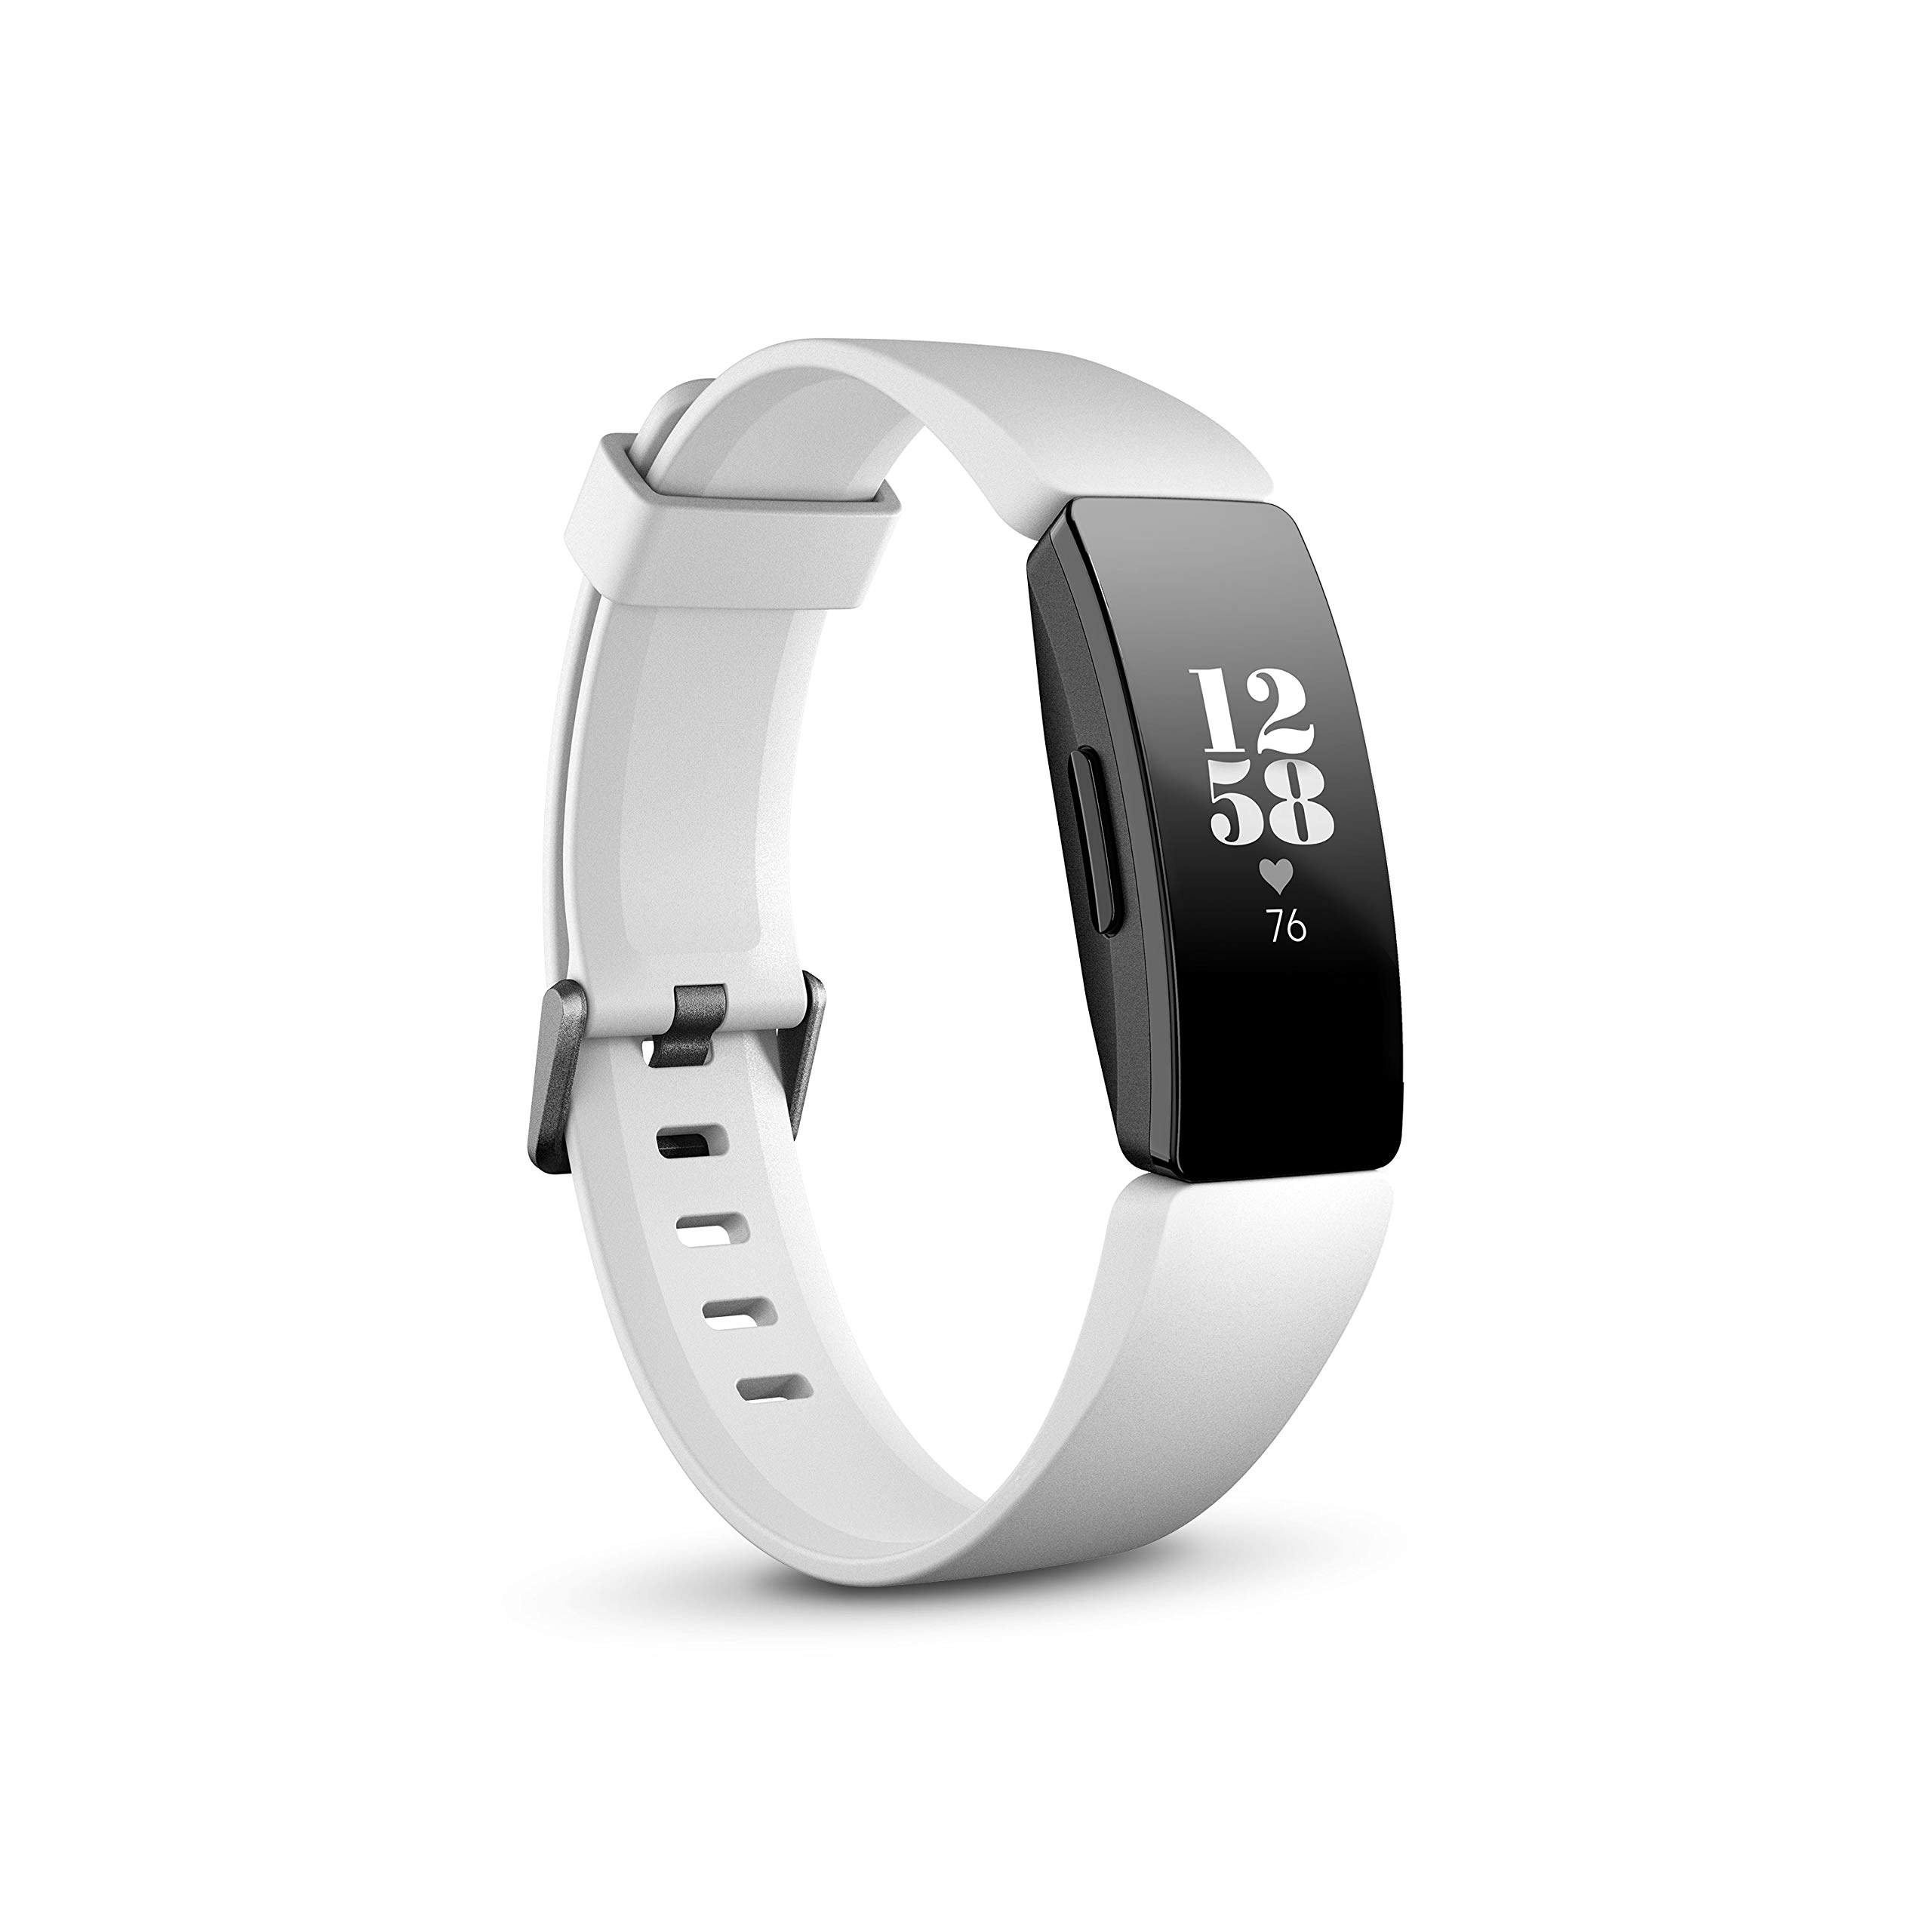 Fitbit Inspire Fitness Tracker included